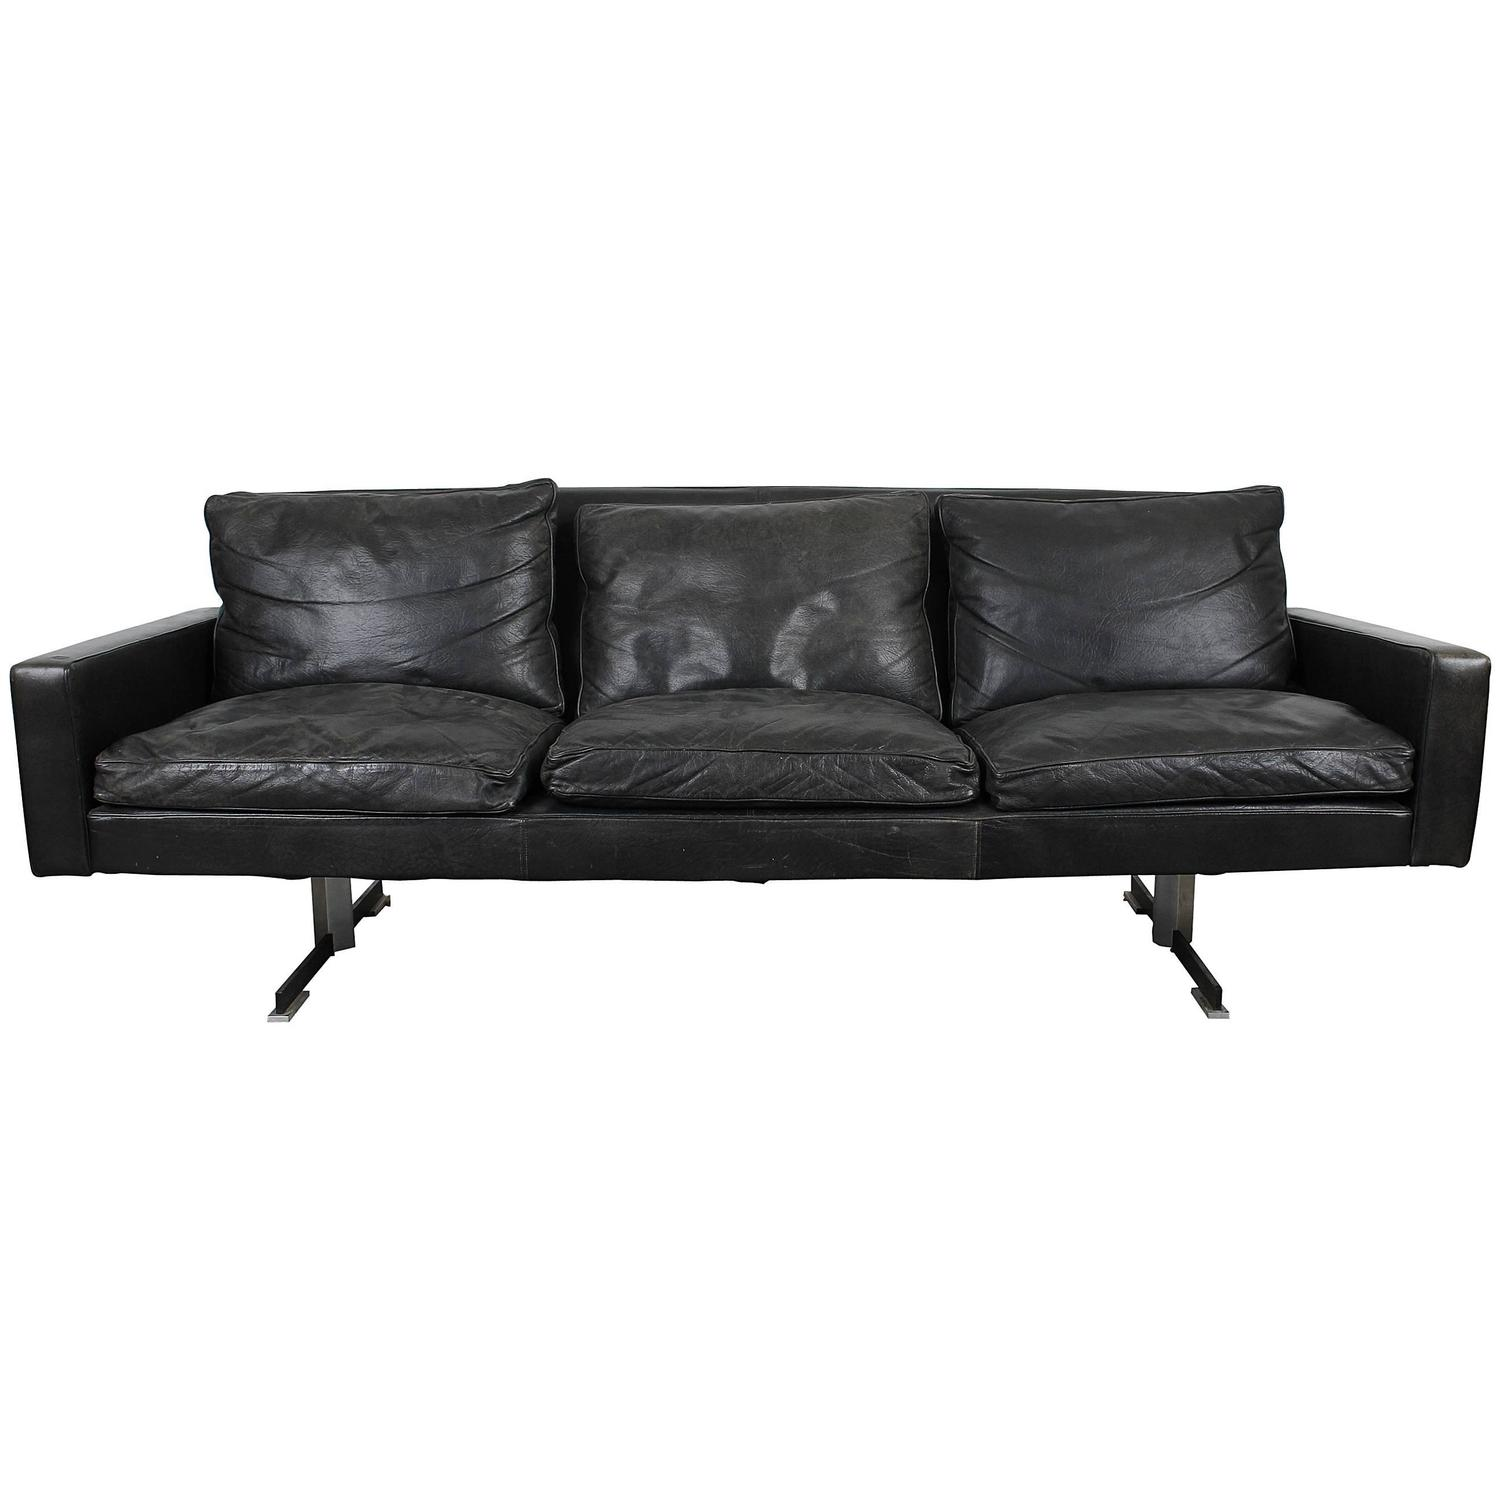 Mid Century Modern Black Leather Sofa with Chrome Legs at 1stdibs